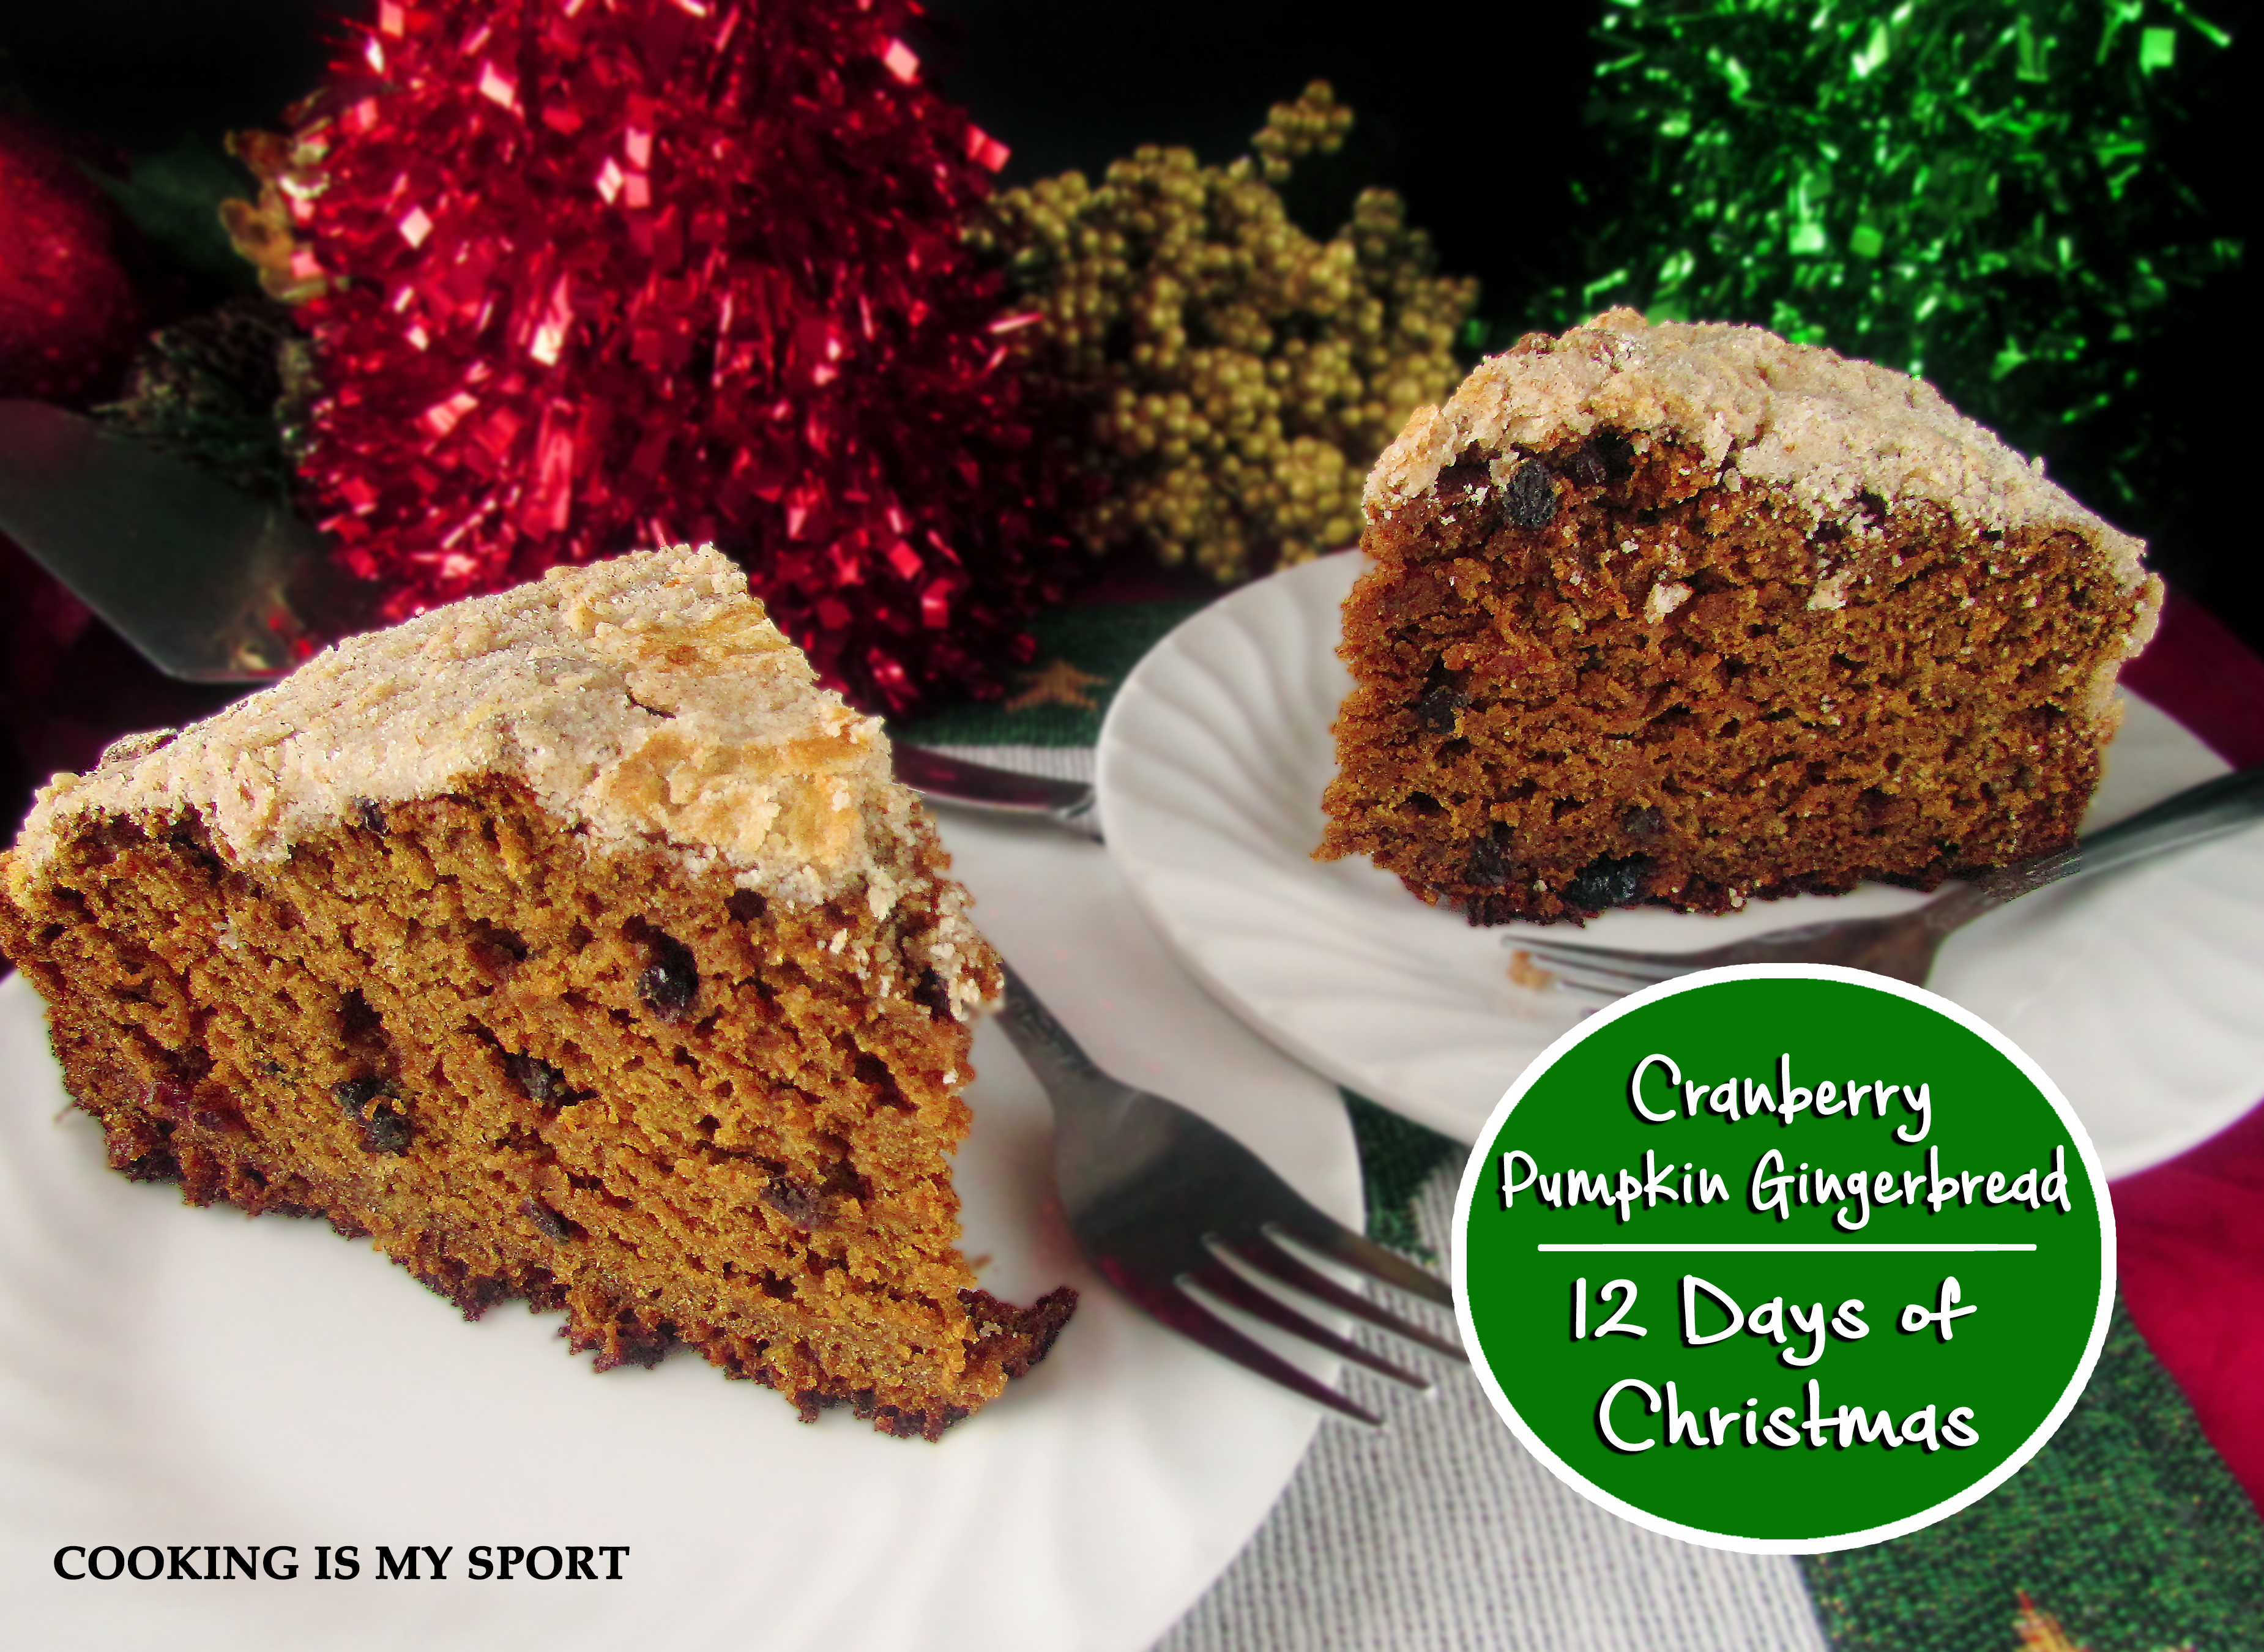 Cranberry Pumpkin Gingerbread6